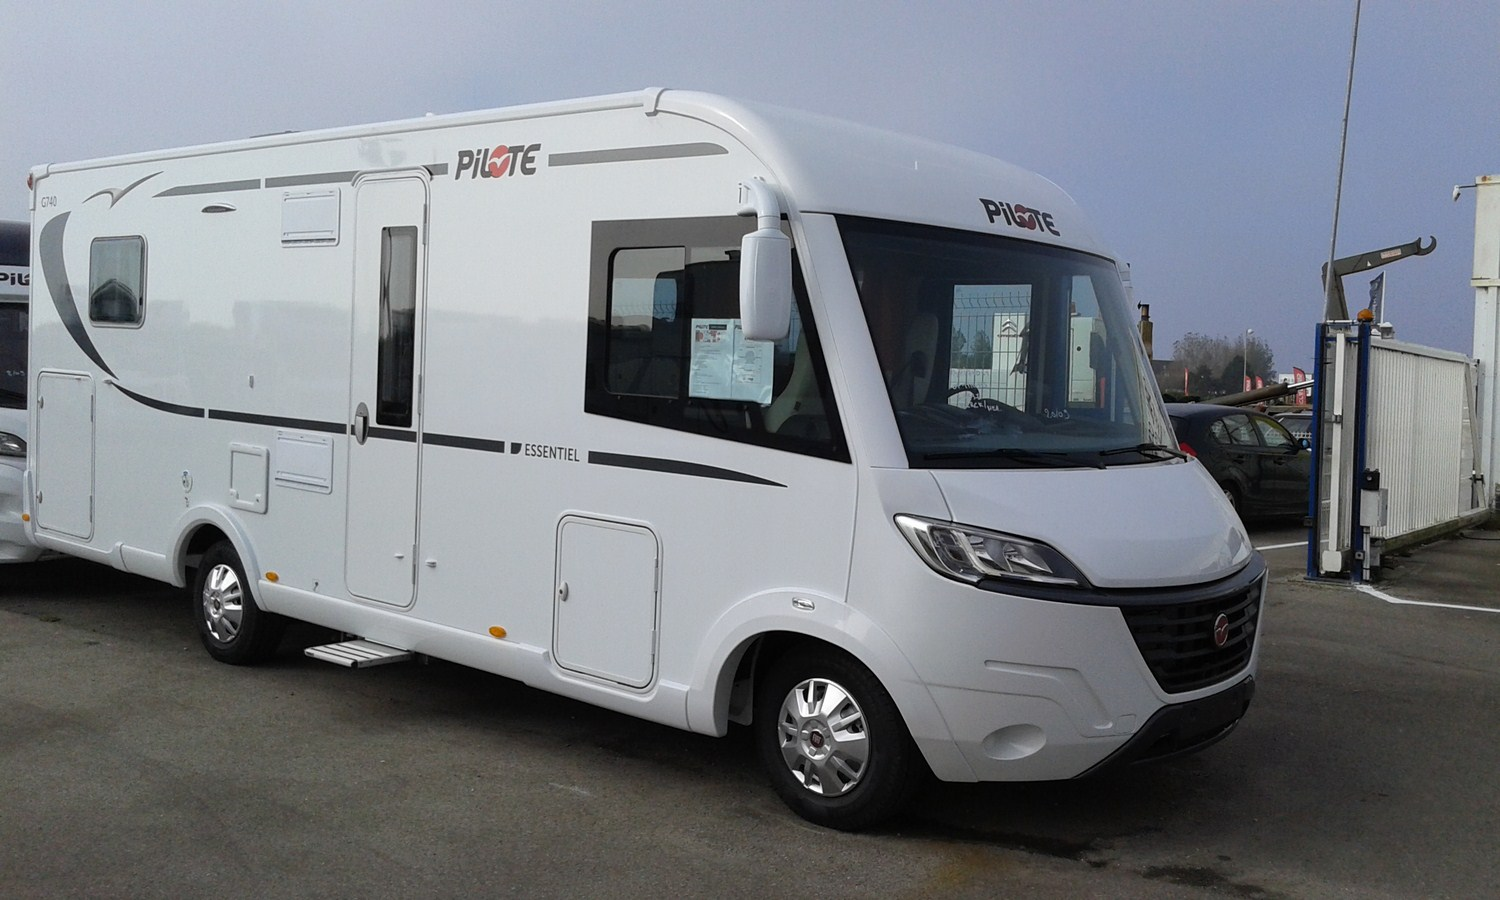 pilote g 740 c essentiel neuf de 2017 fiat camping car en vente berck sur mer pas de calais. Black Bedroom Furniture Sets. Home Design Ideas